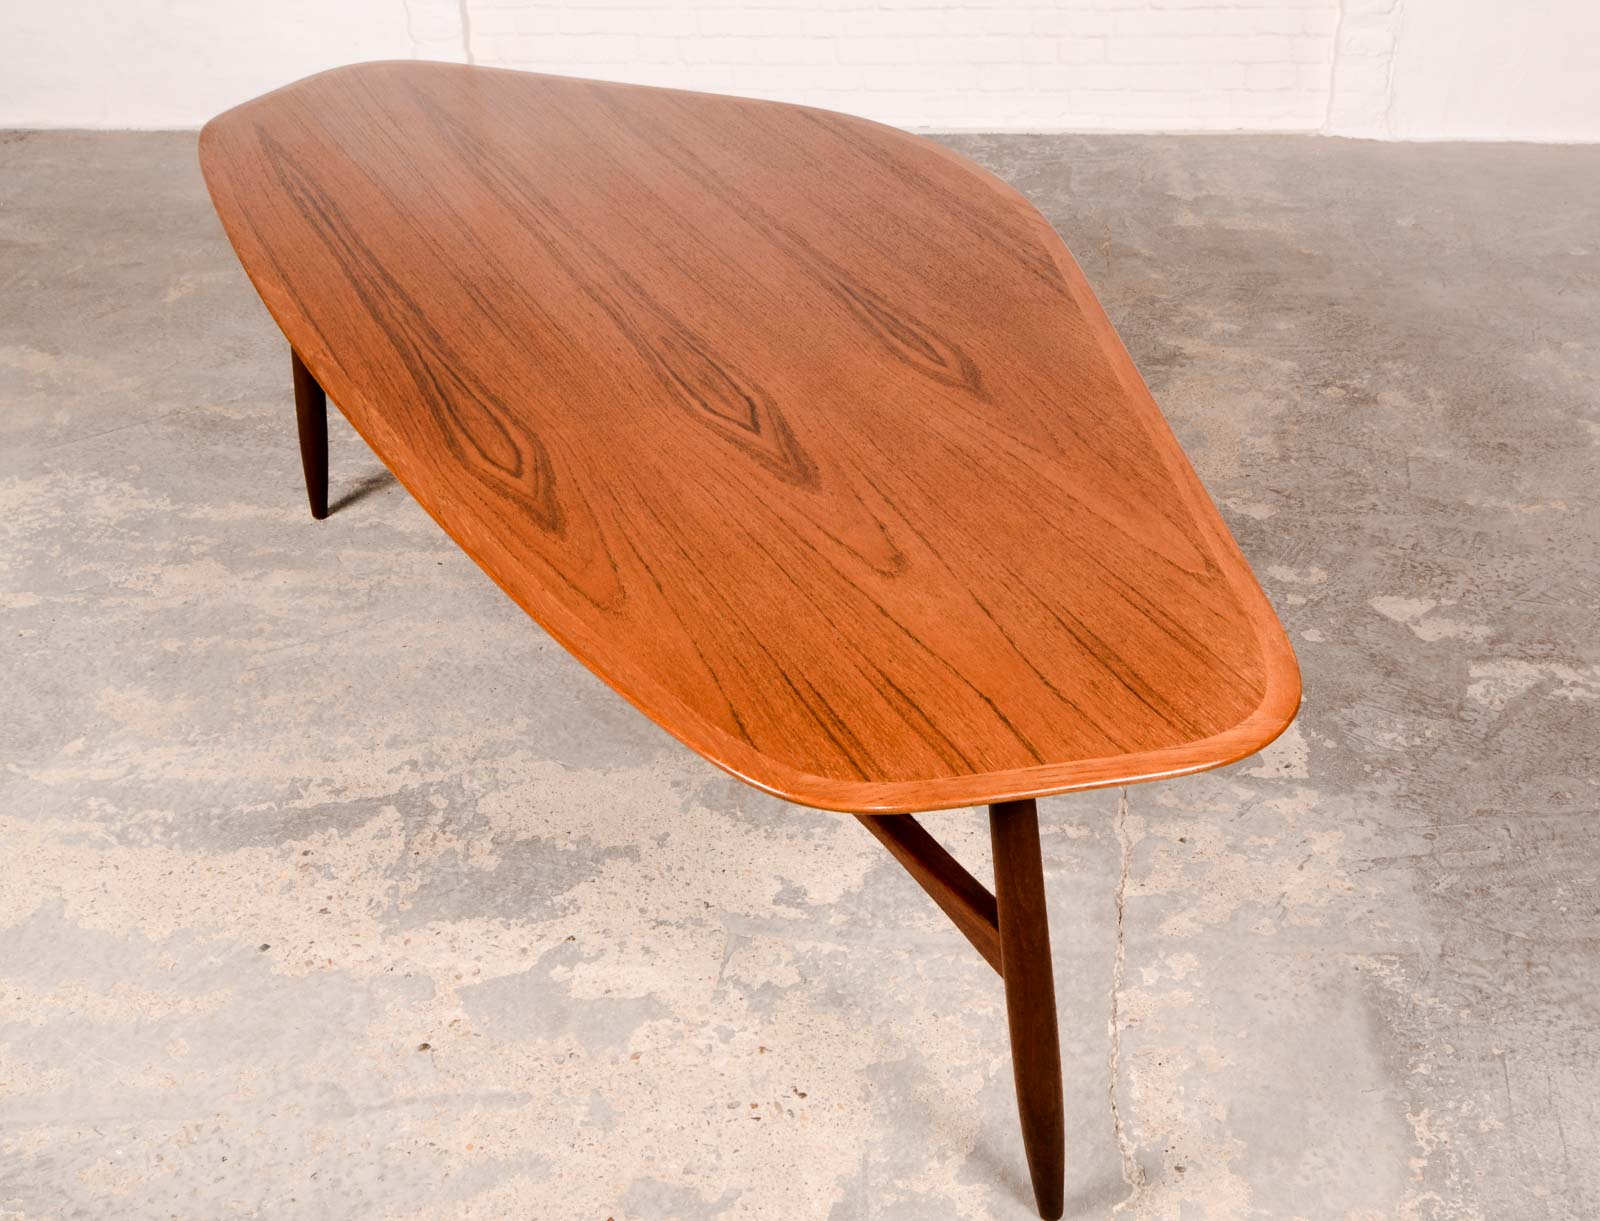 Free Form Shaped Kidney Coffee Table designed by Svante Skogh